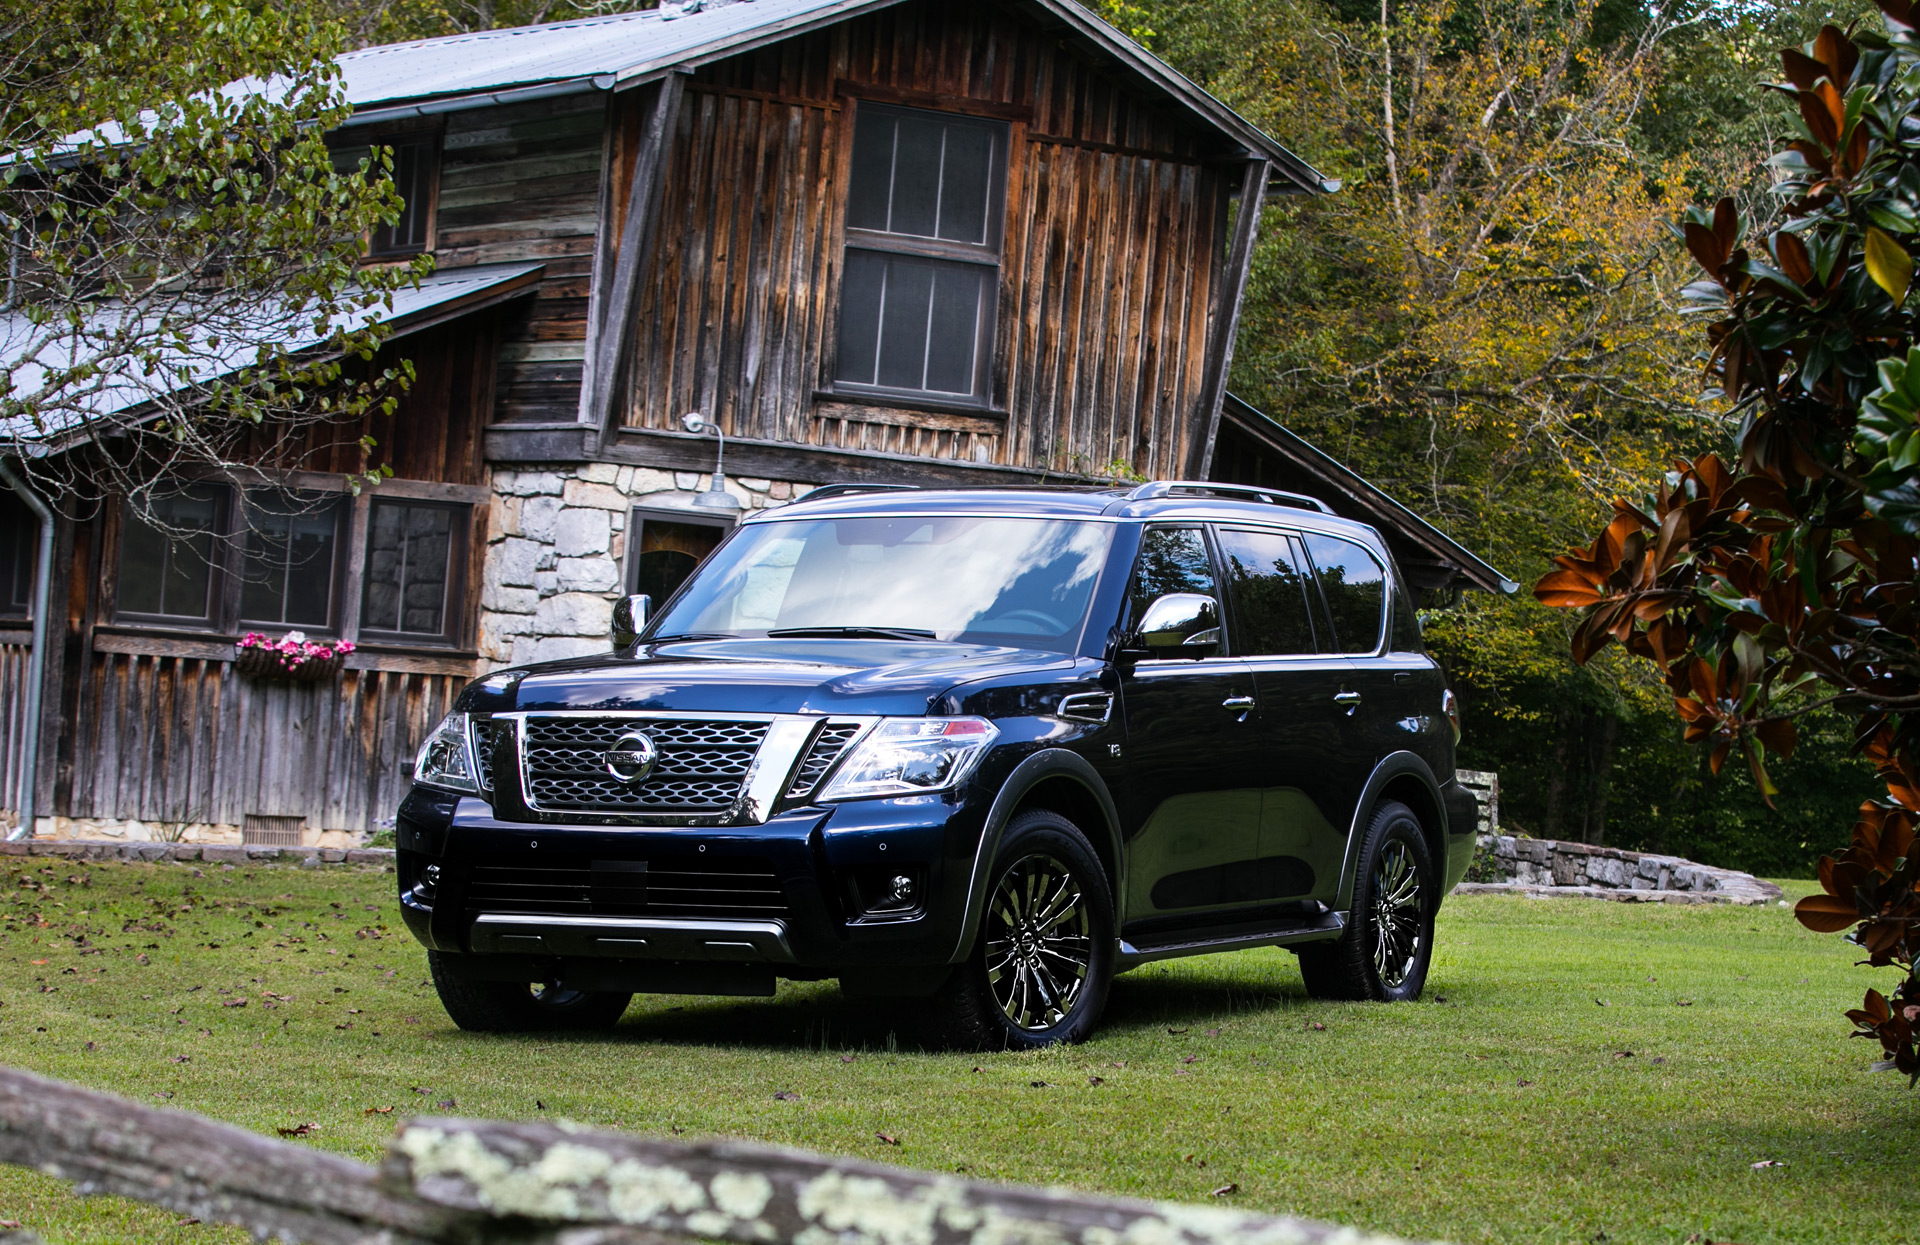 Nissan Armada Towing Capacity >> 2018 Nissan Armada goes lux with Platinum Reserve trim